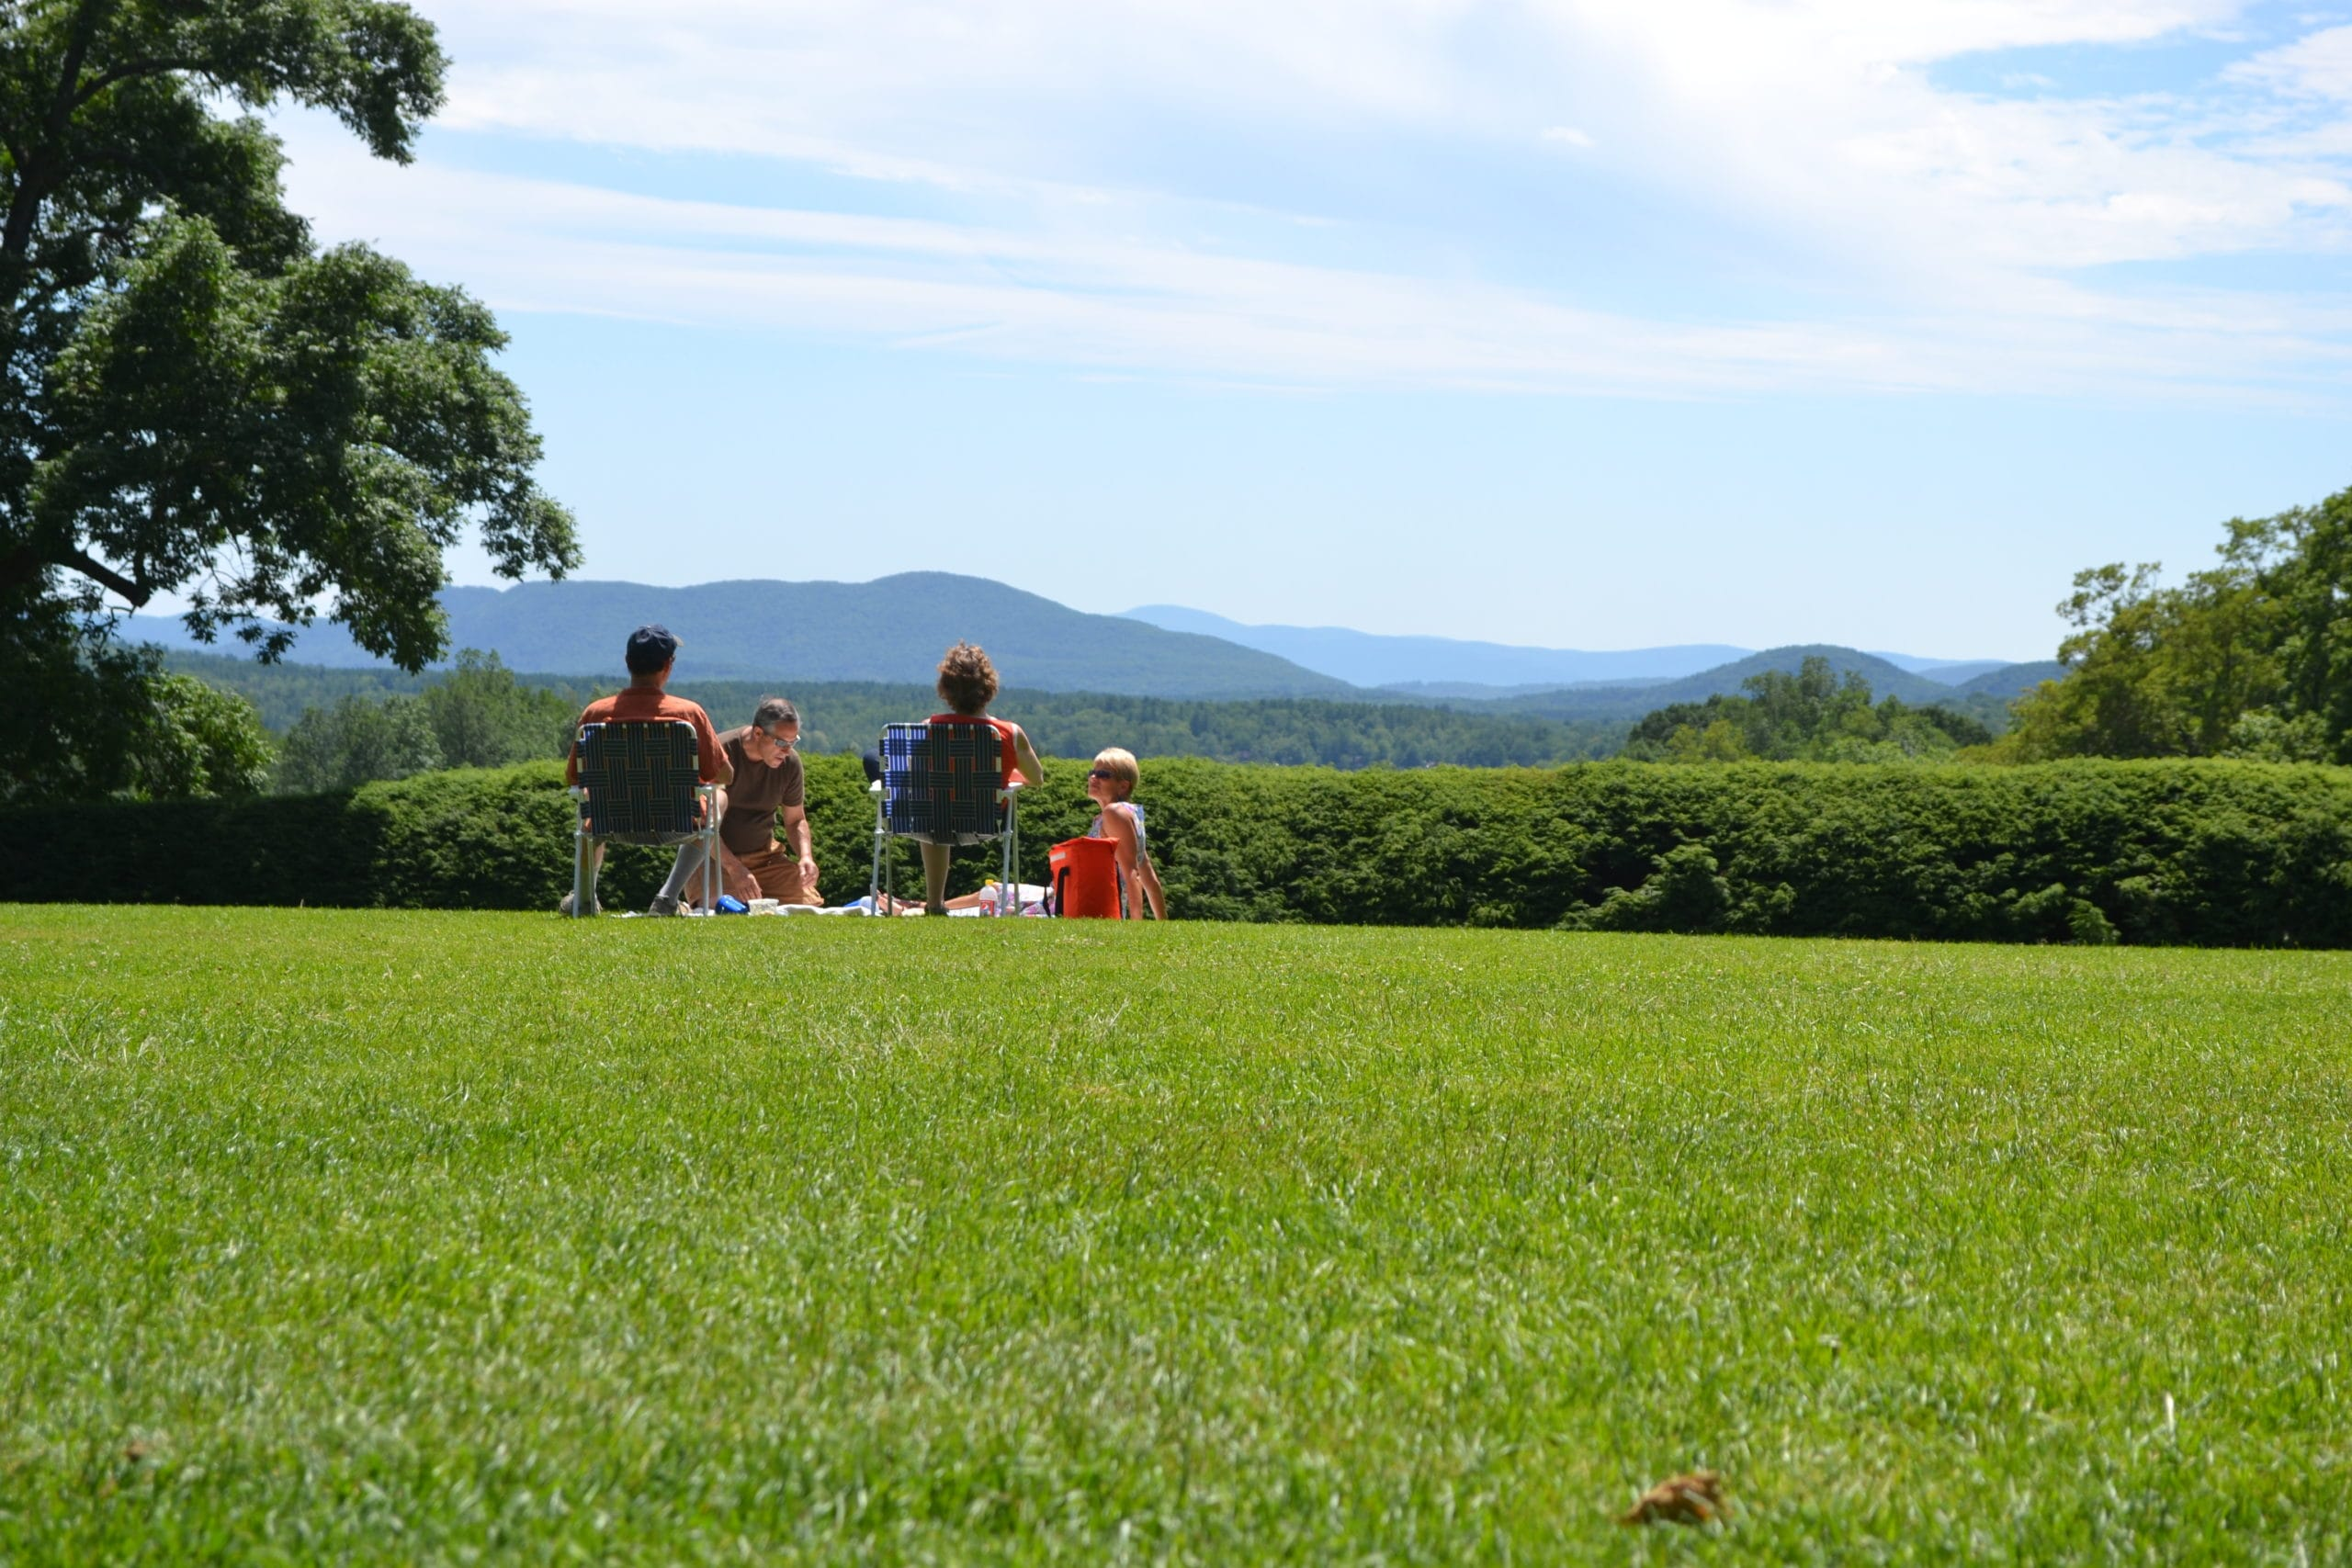 Tanglewood in Lenox, Mass. is open now for visitors.